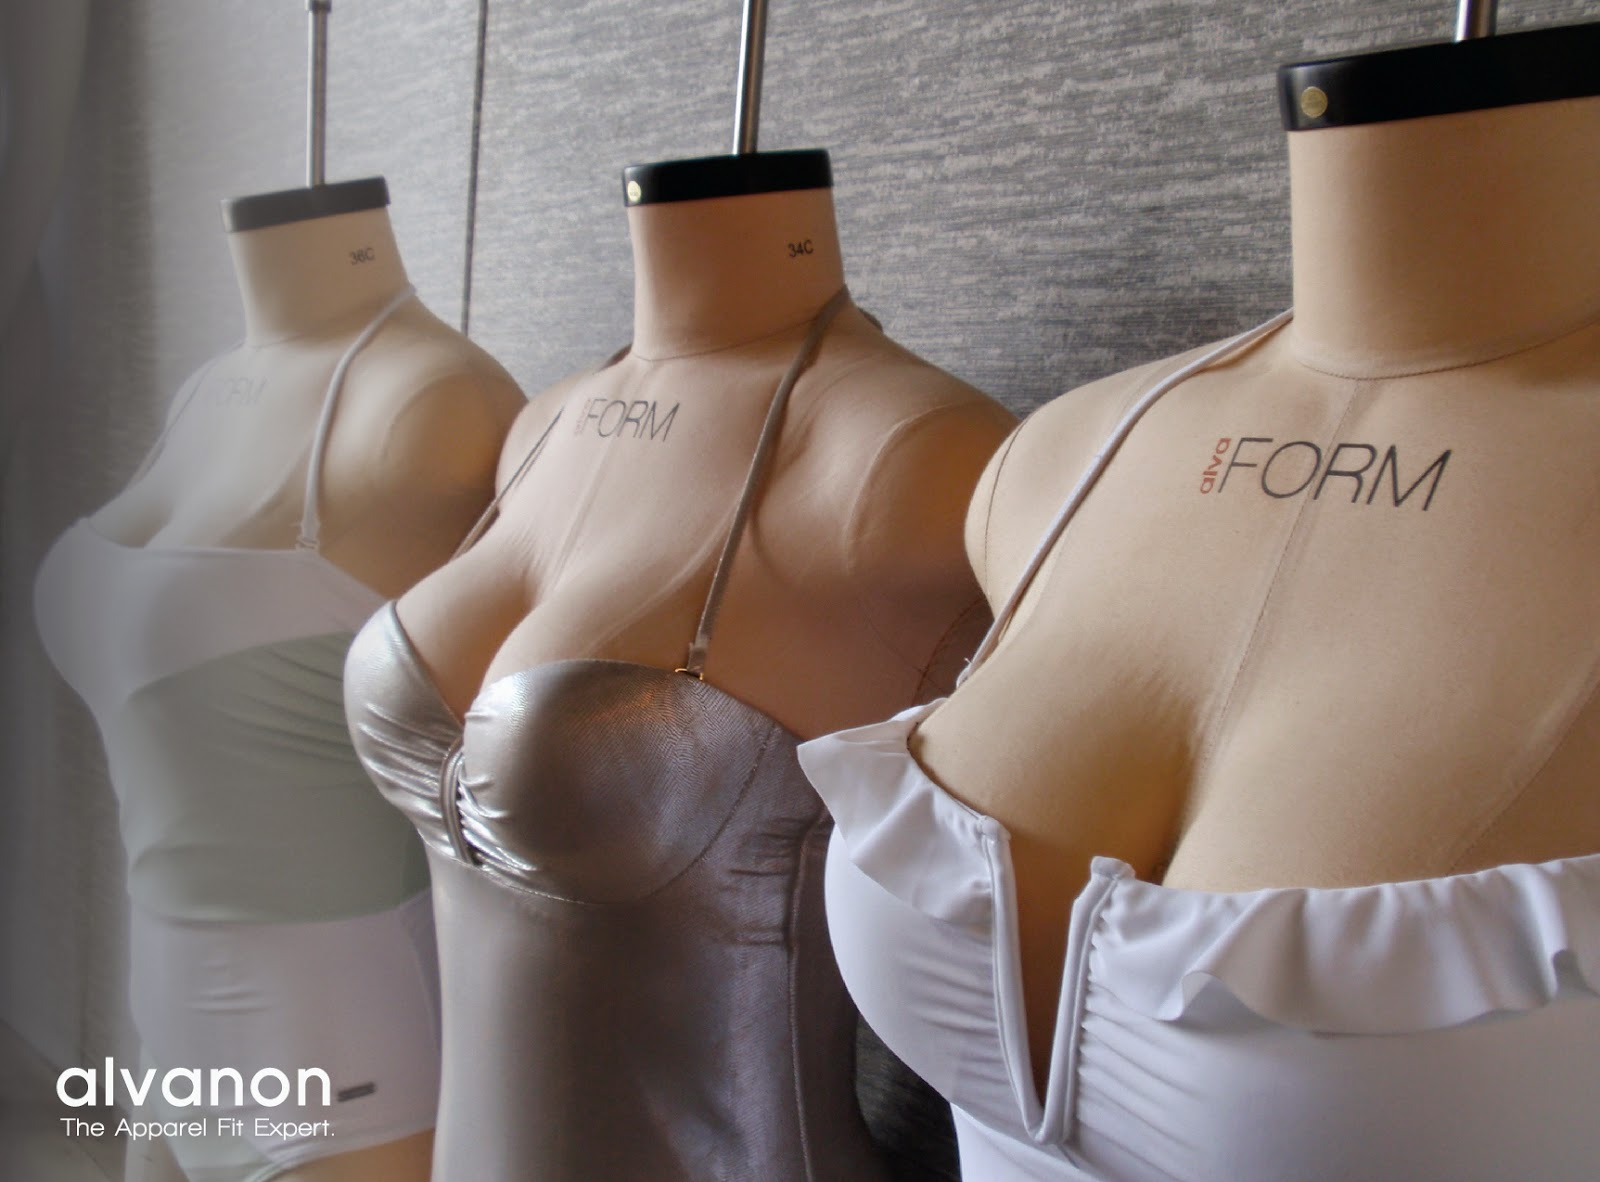 Intimate Apparel & Swim Fit Mannequins